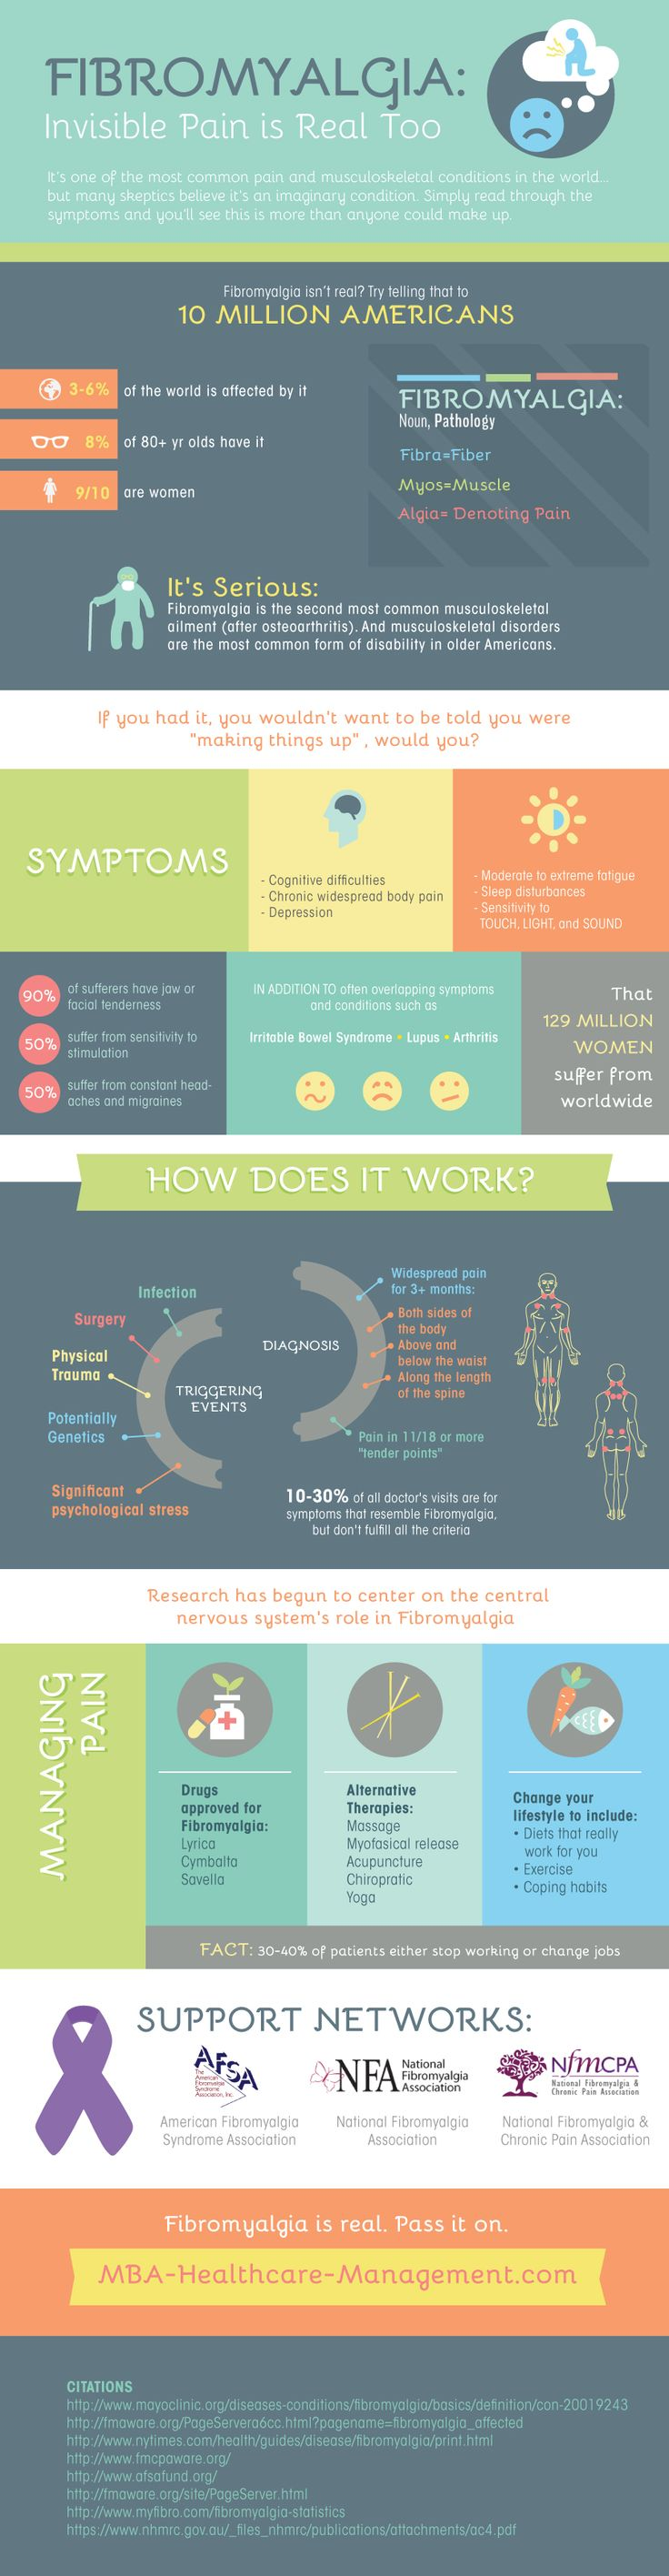 Infographic on fibromyalgia: Invisible pain is real too.